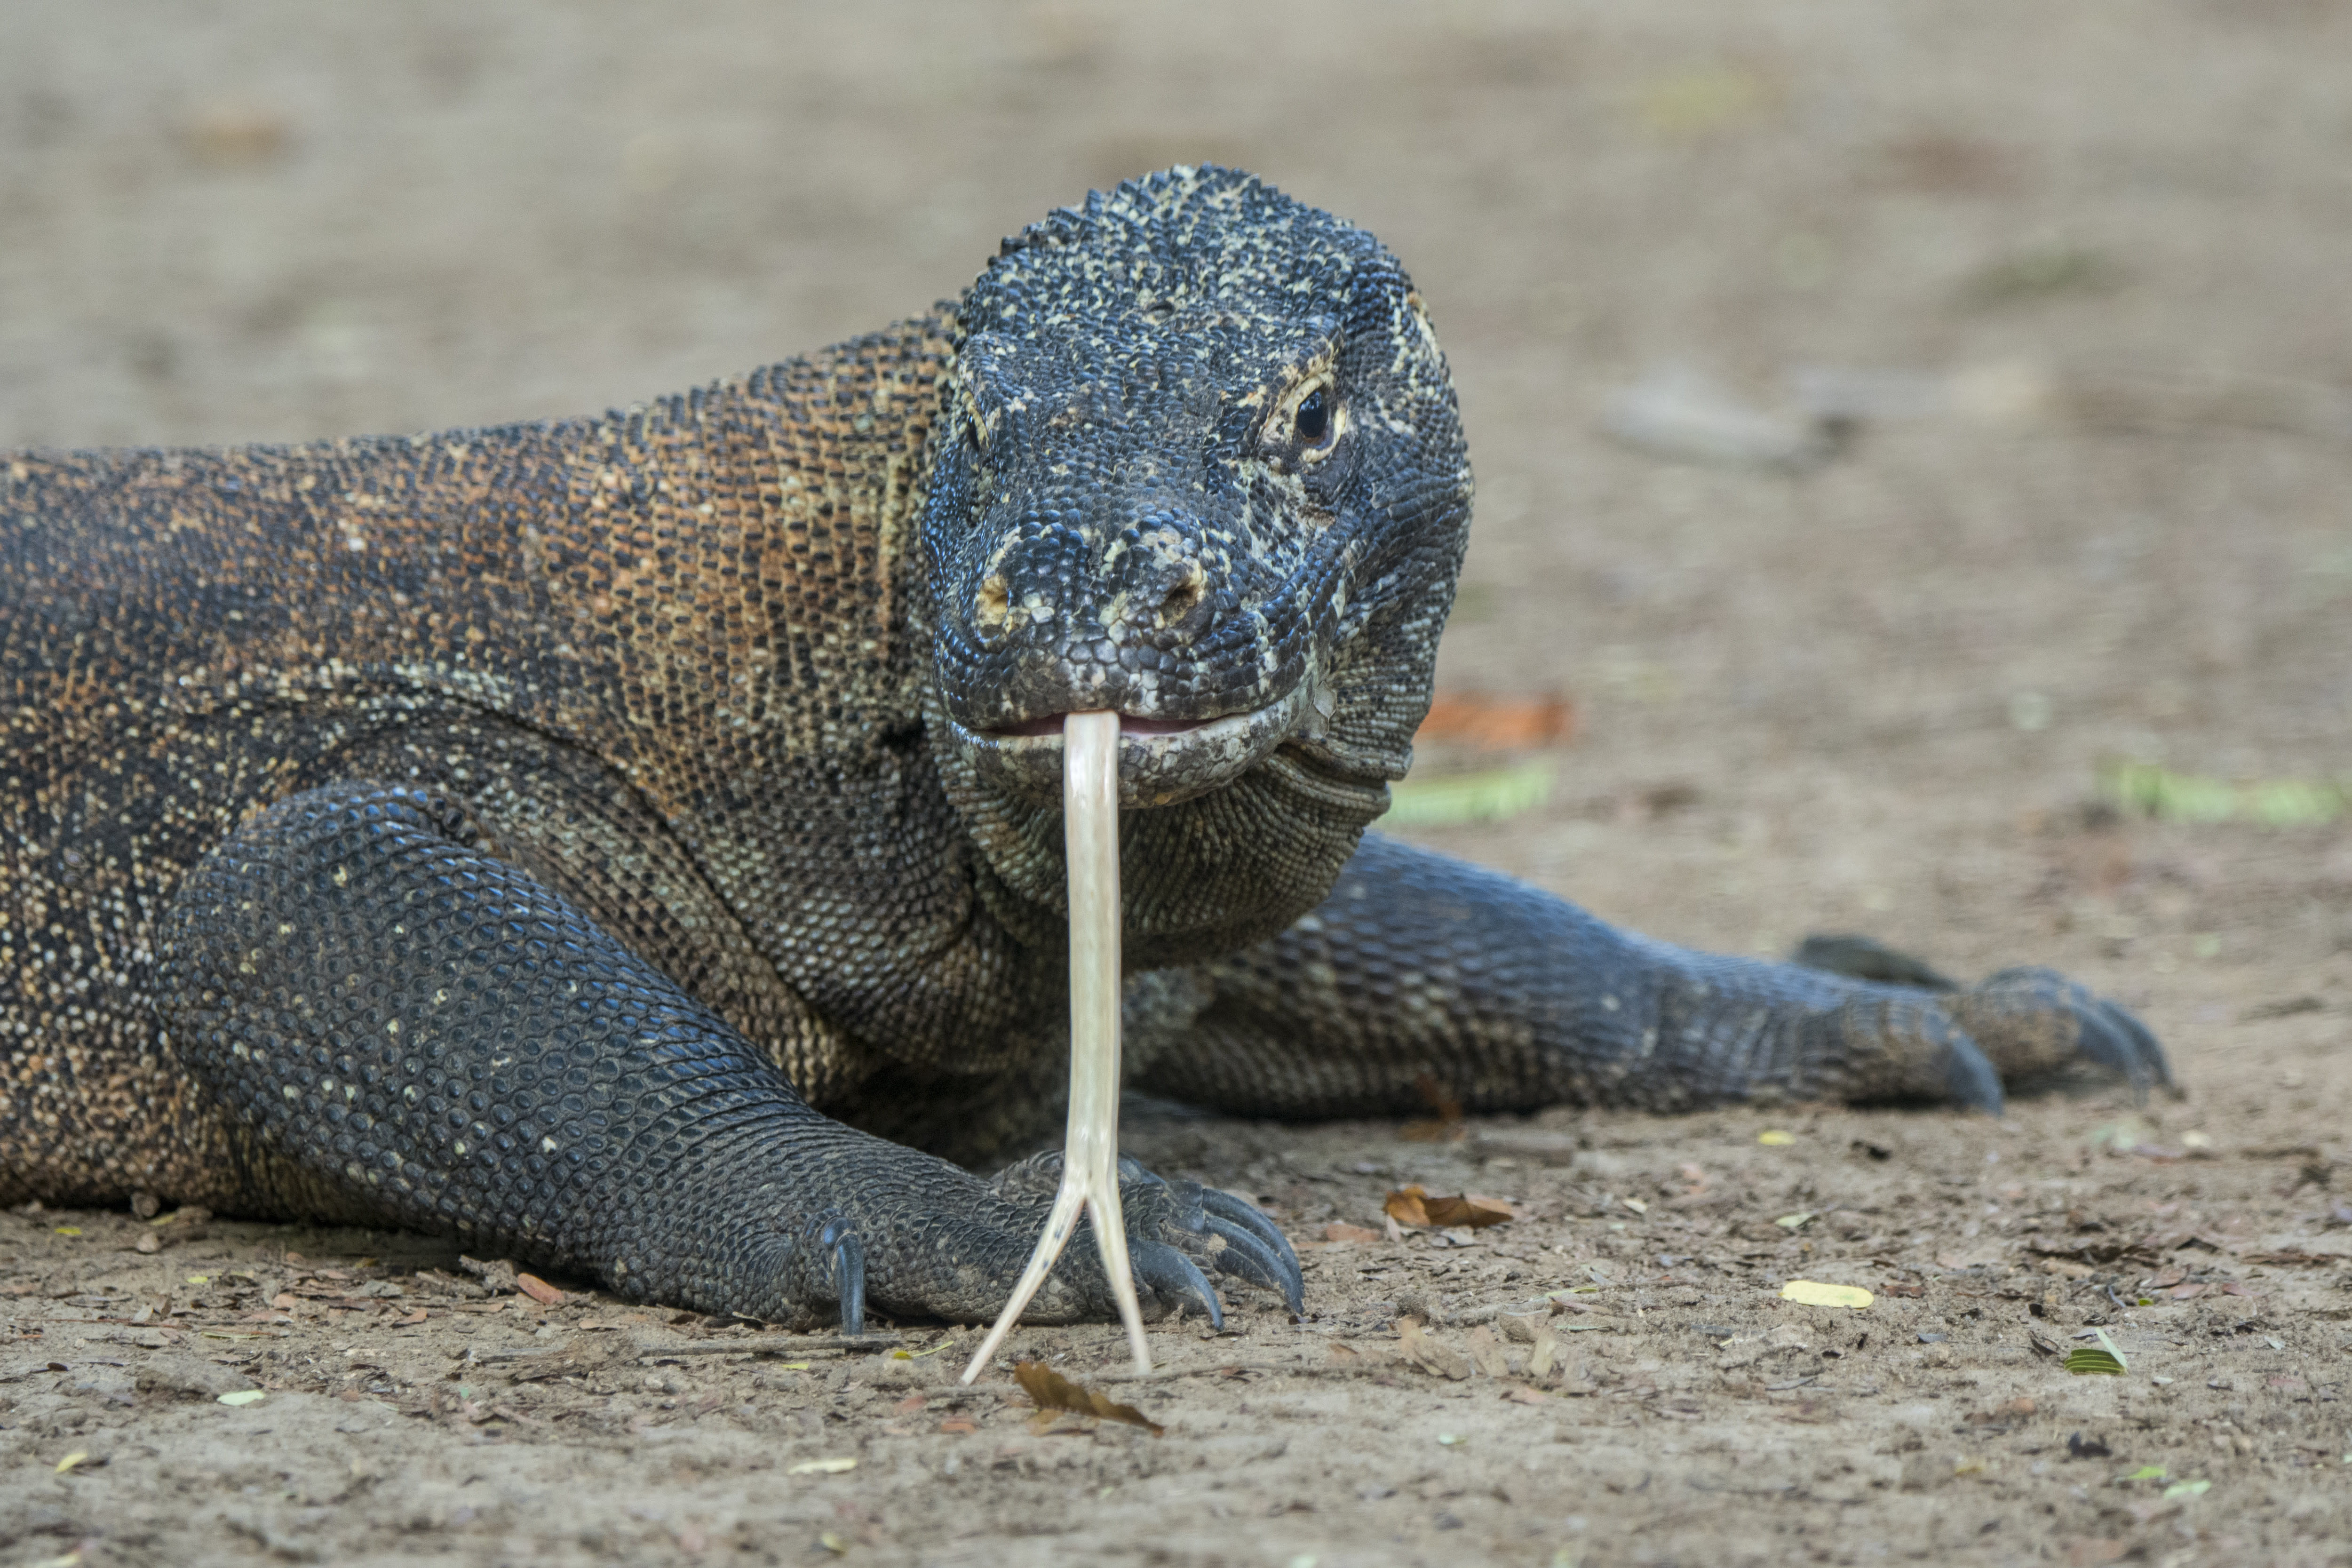 Komodo dragons sexually mature